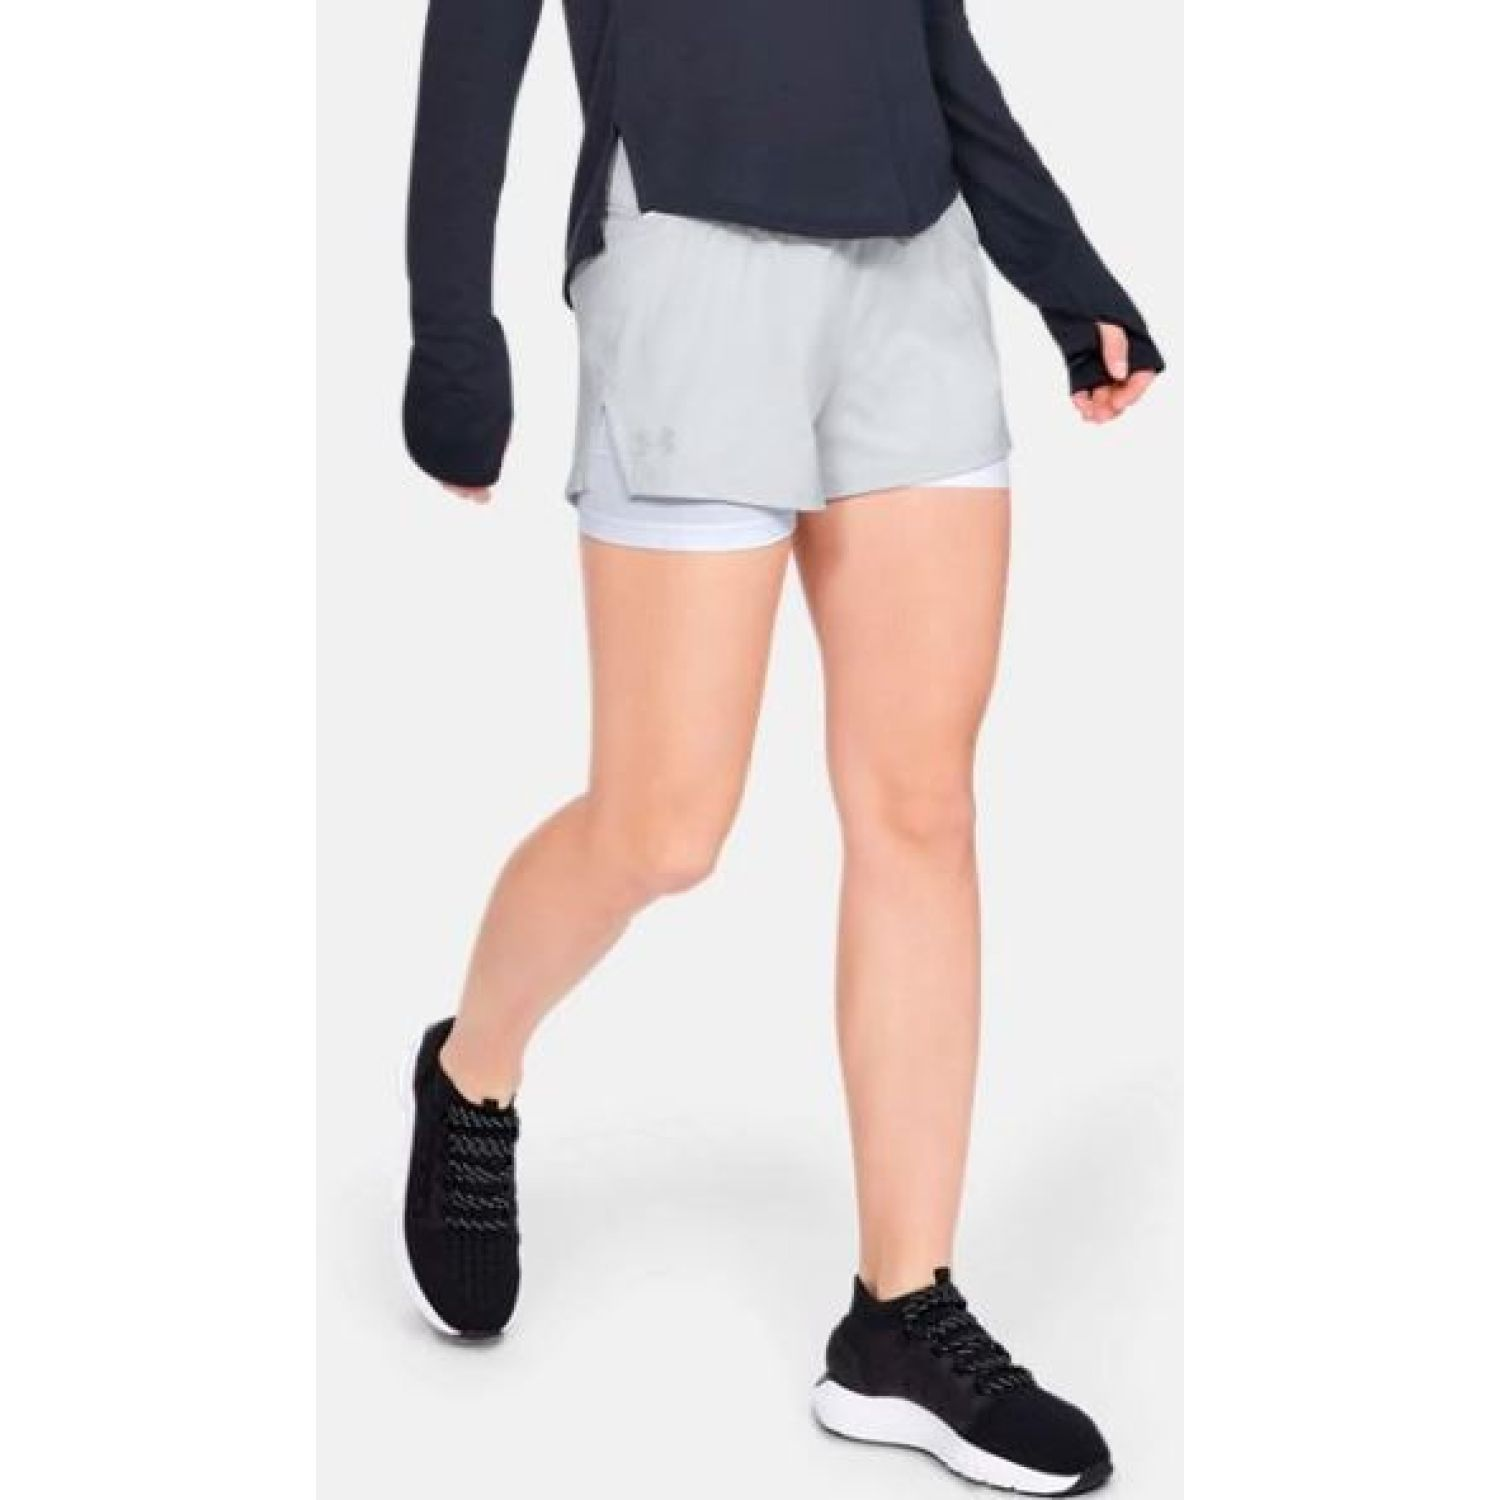 Under Armour ua launch sw 2-in-1 short Gris Shorts Deportivos